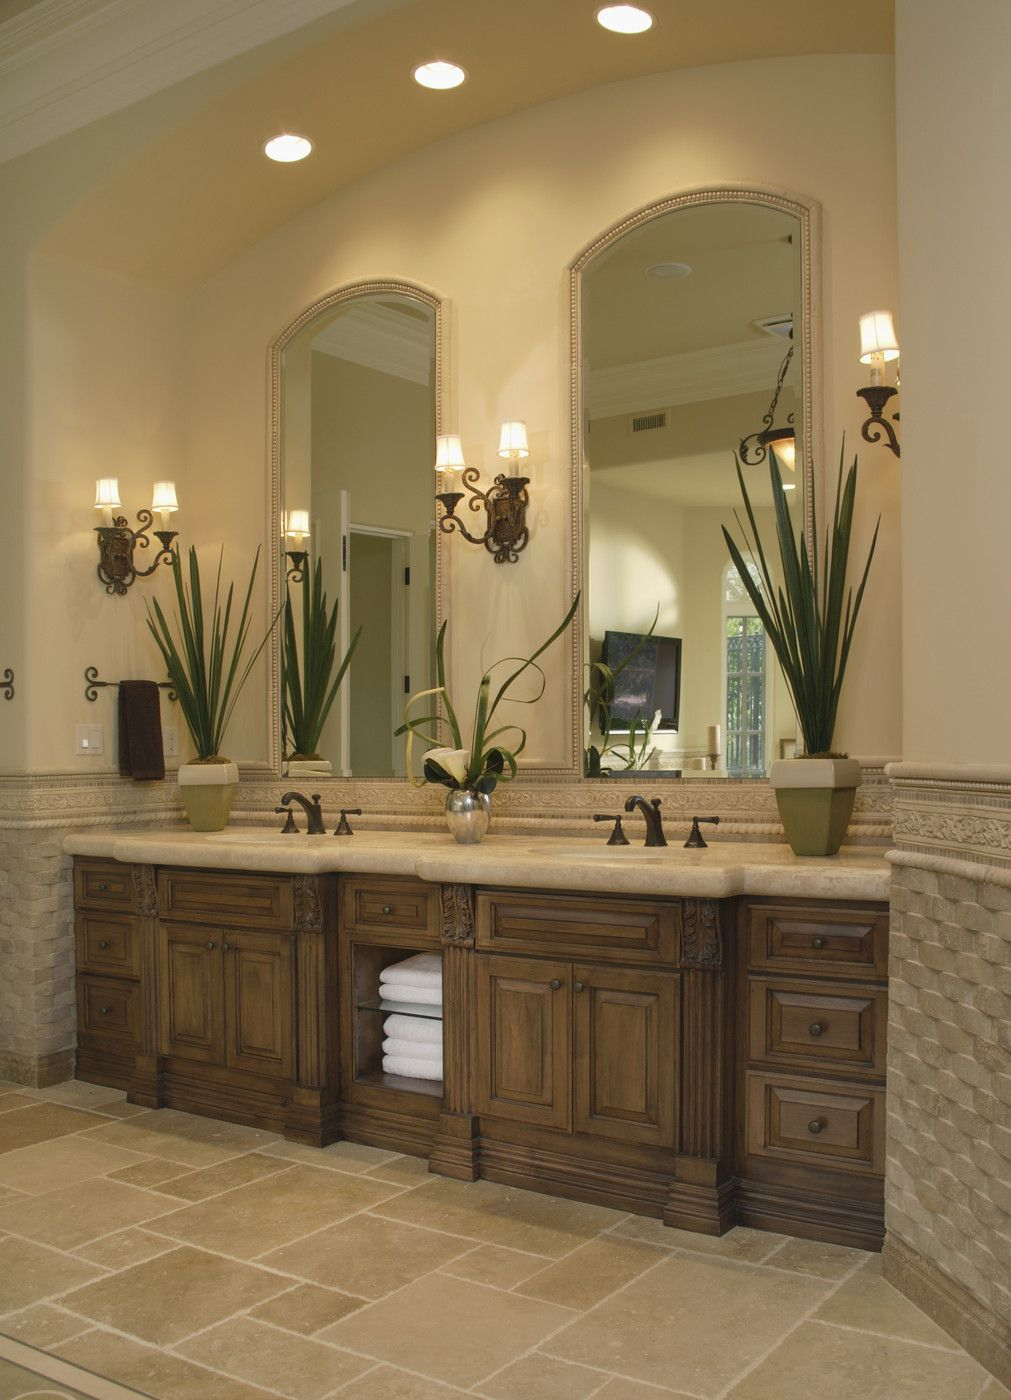 bathroom vanity mirror lights. Makeup Mirror Lighting. Light Up The Area Evenly. Lighting Bathroom Vanity Lights A